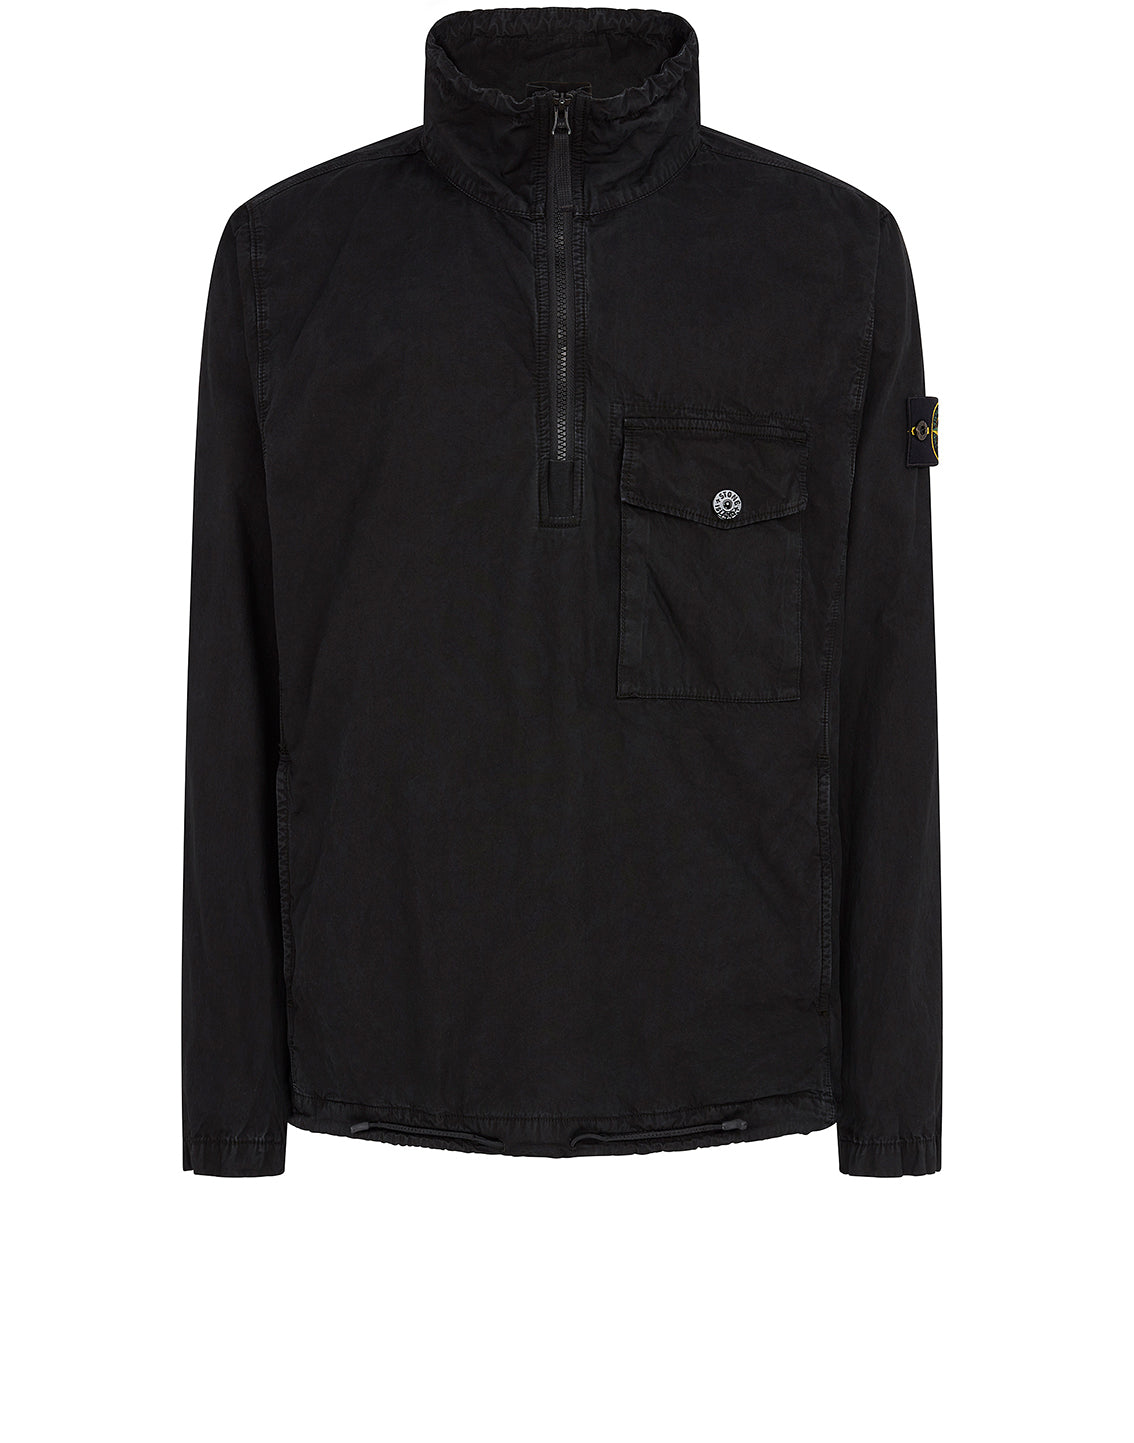 113WN T.CO+OLD Overshirt in Black